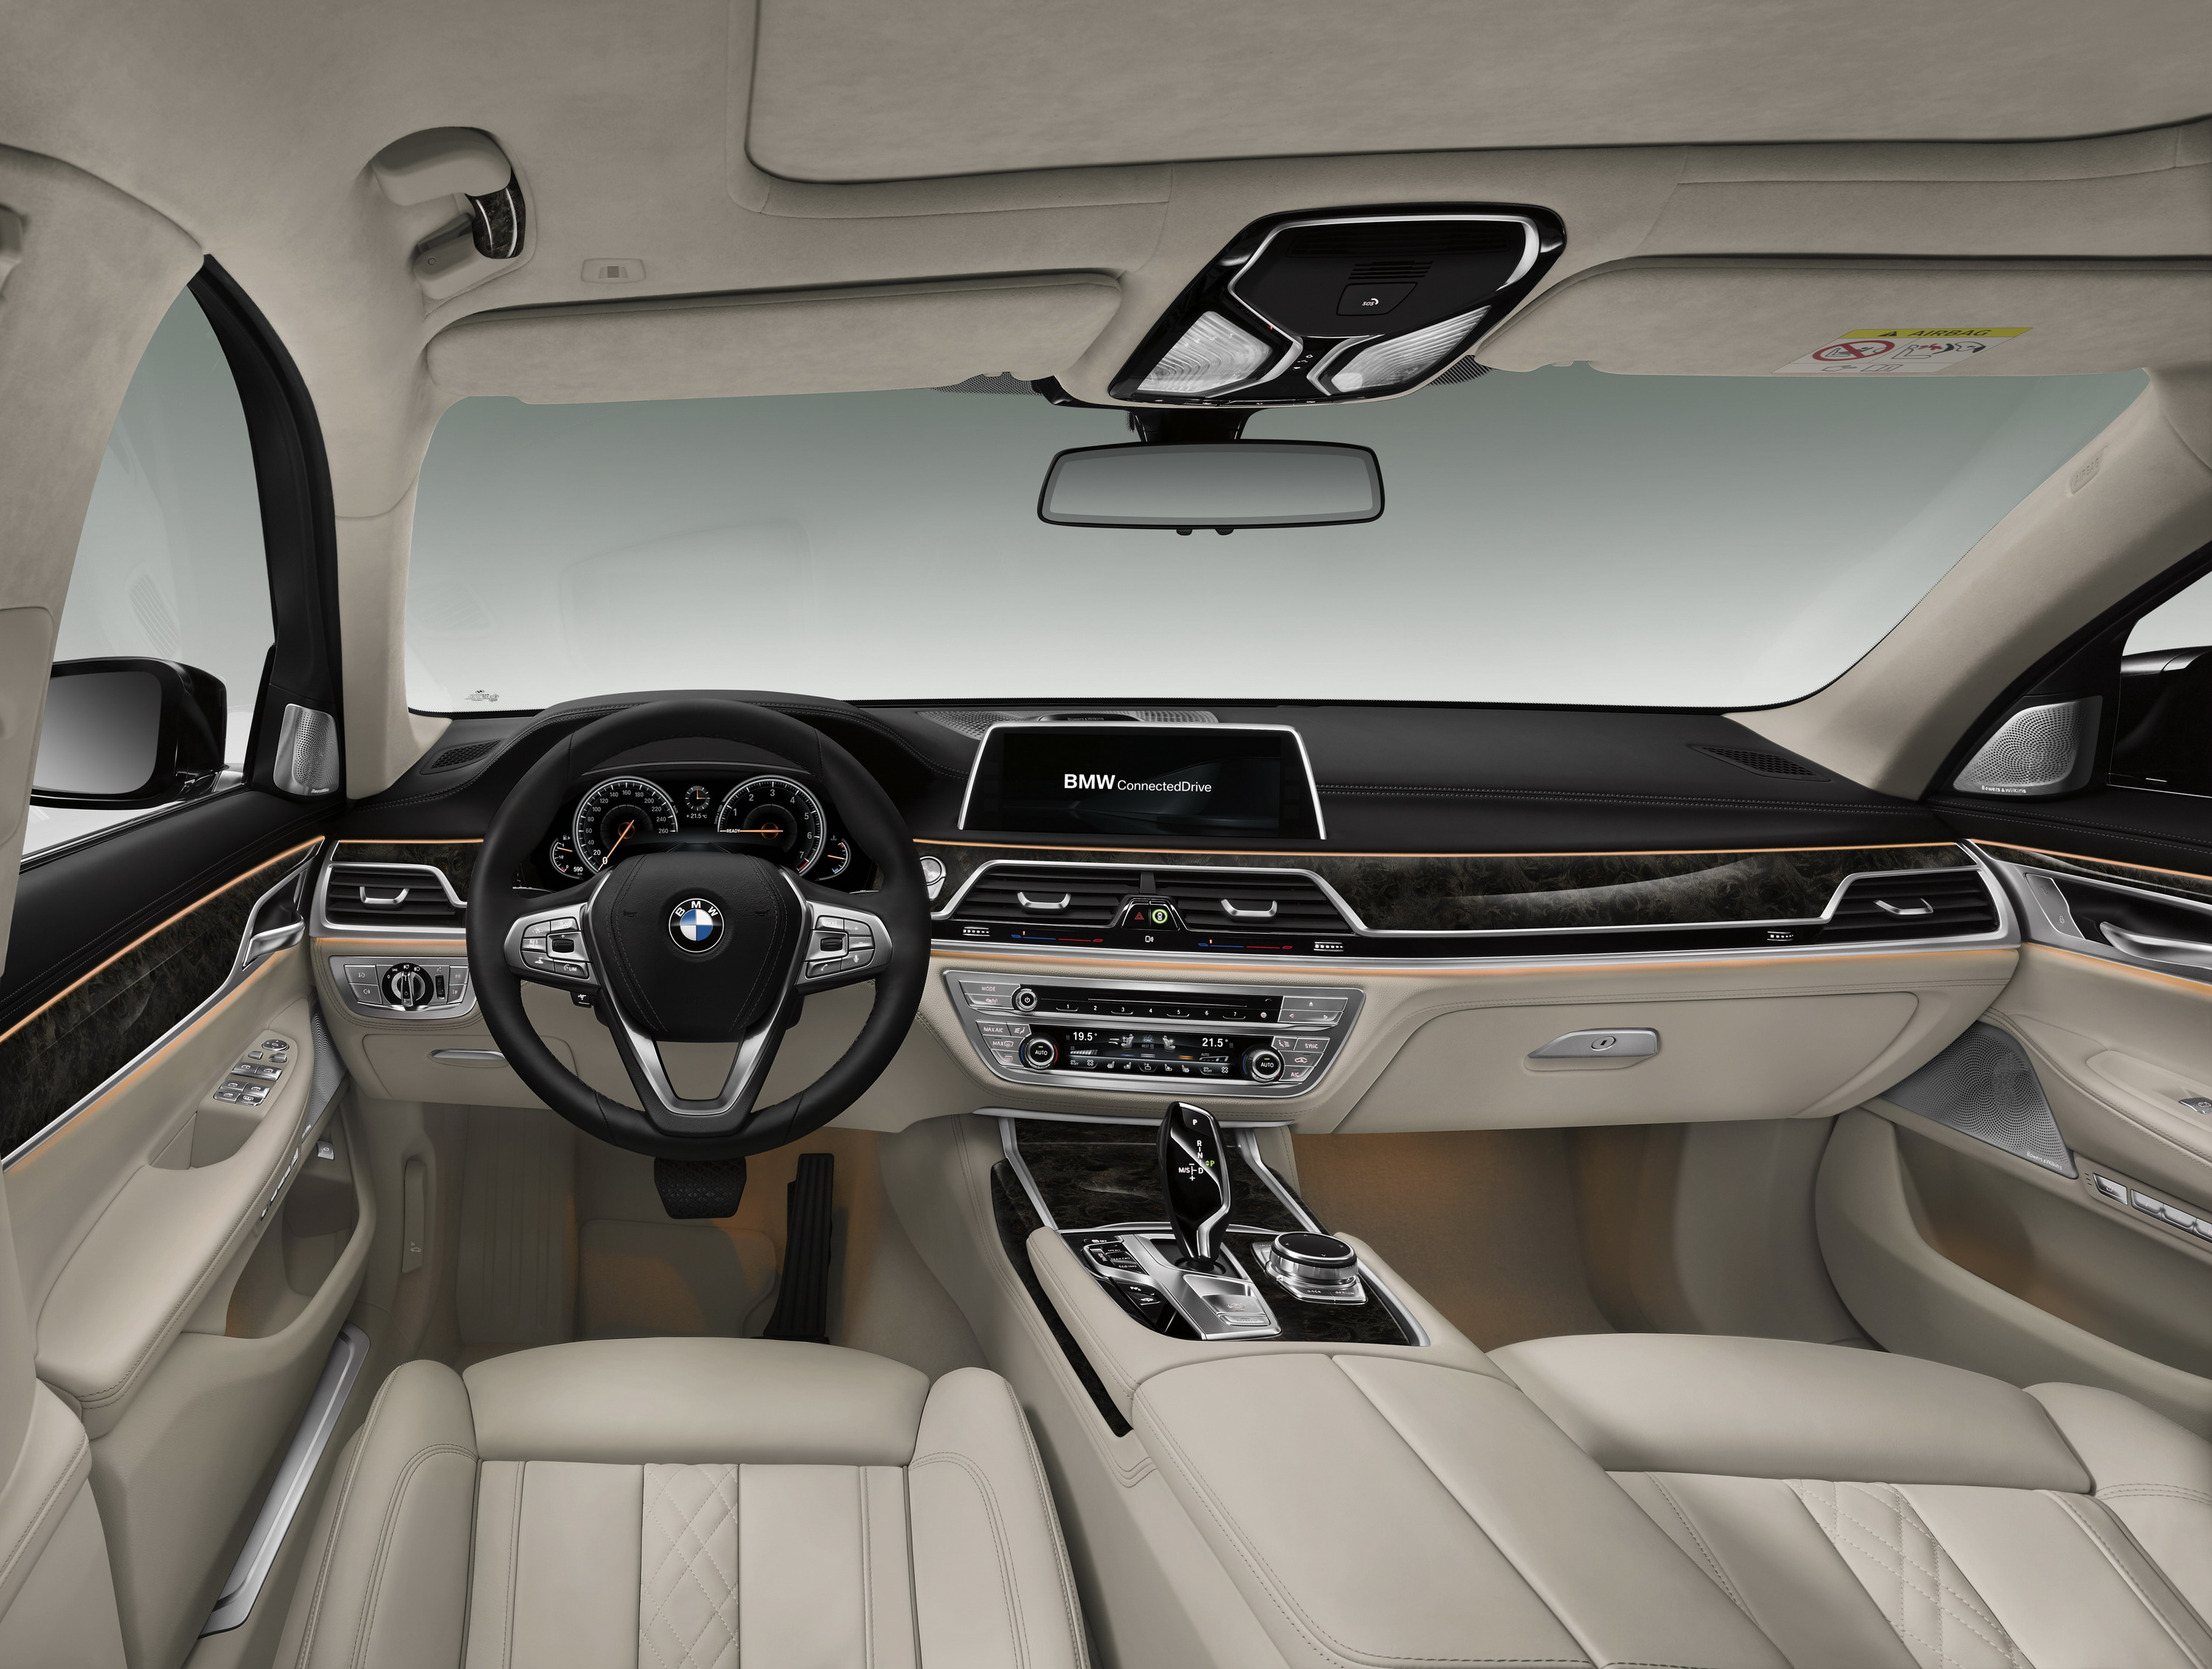 2016 bmw 7 series review - top speed